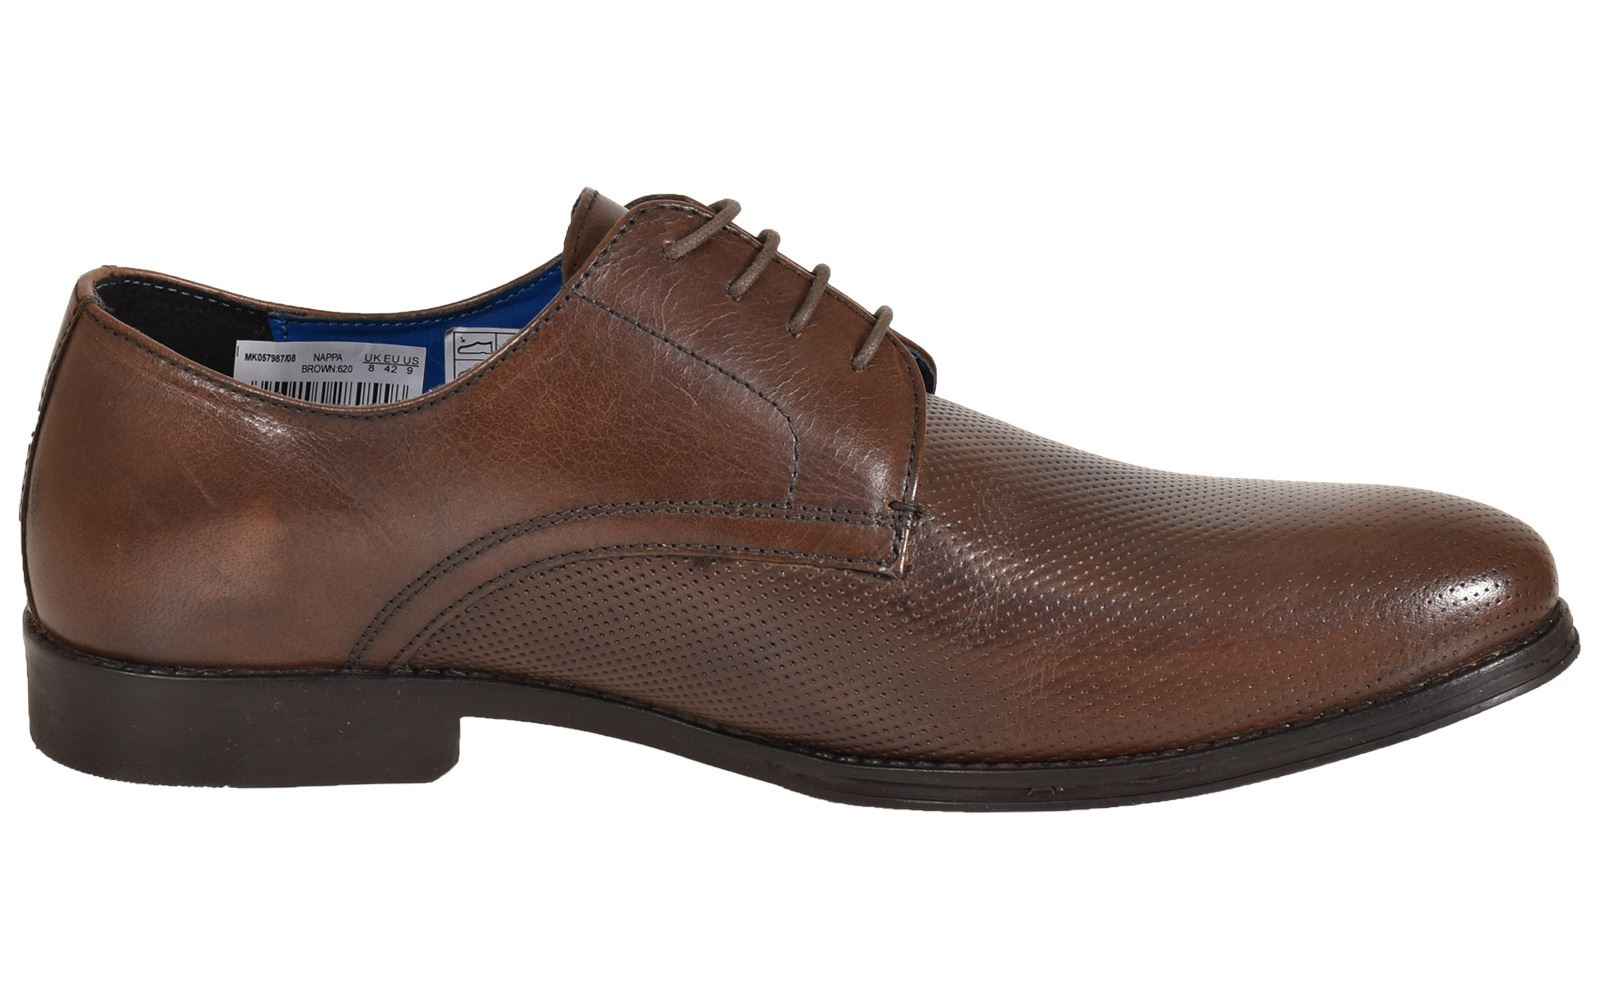 Mens-UK-Style-Leather-Lining-Formal-Office-Wedding-Smart-Work-Brogue-Shoes thumbnail 46